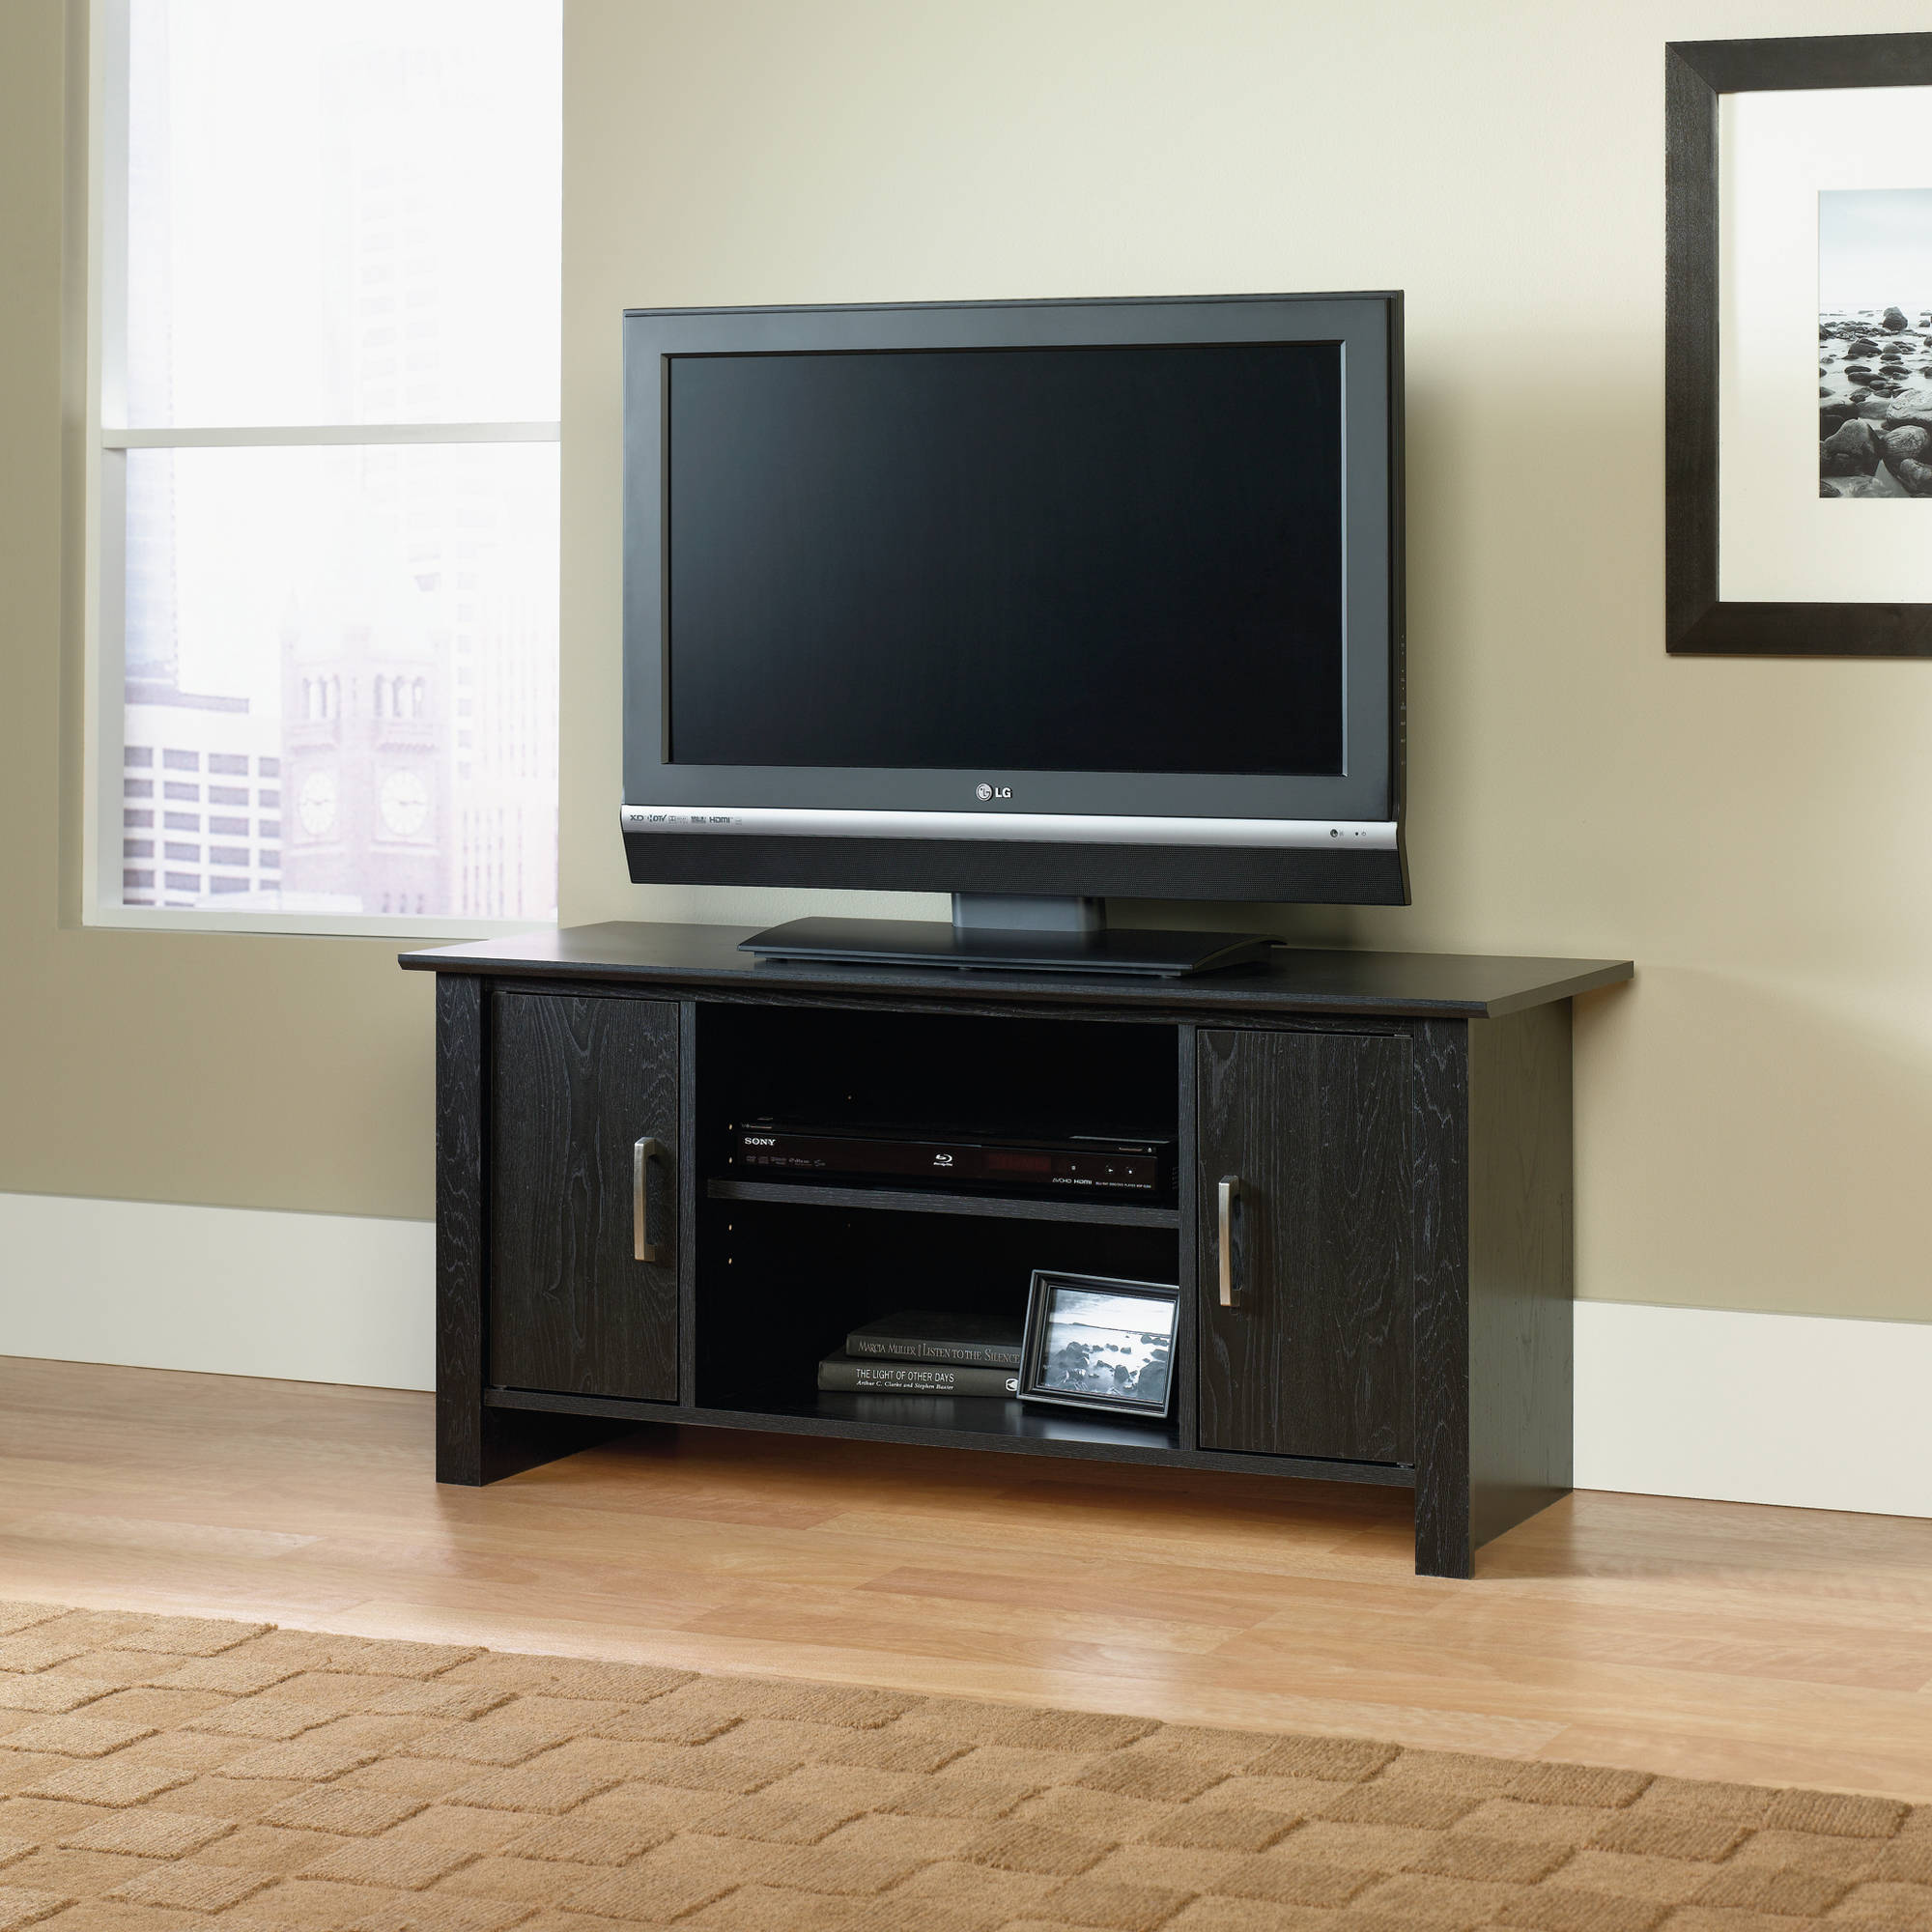 Mainstays TV Stand for Flat-Screen TVs up to 47